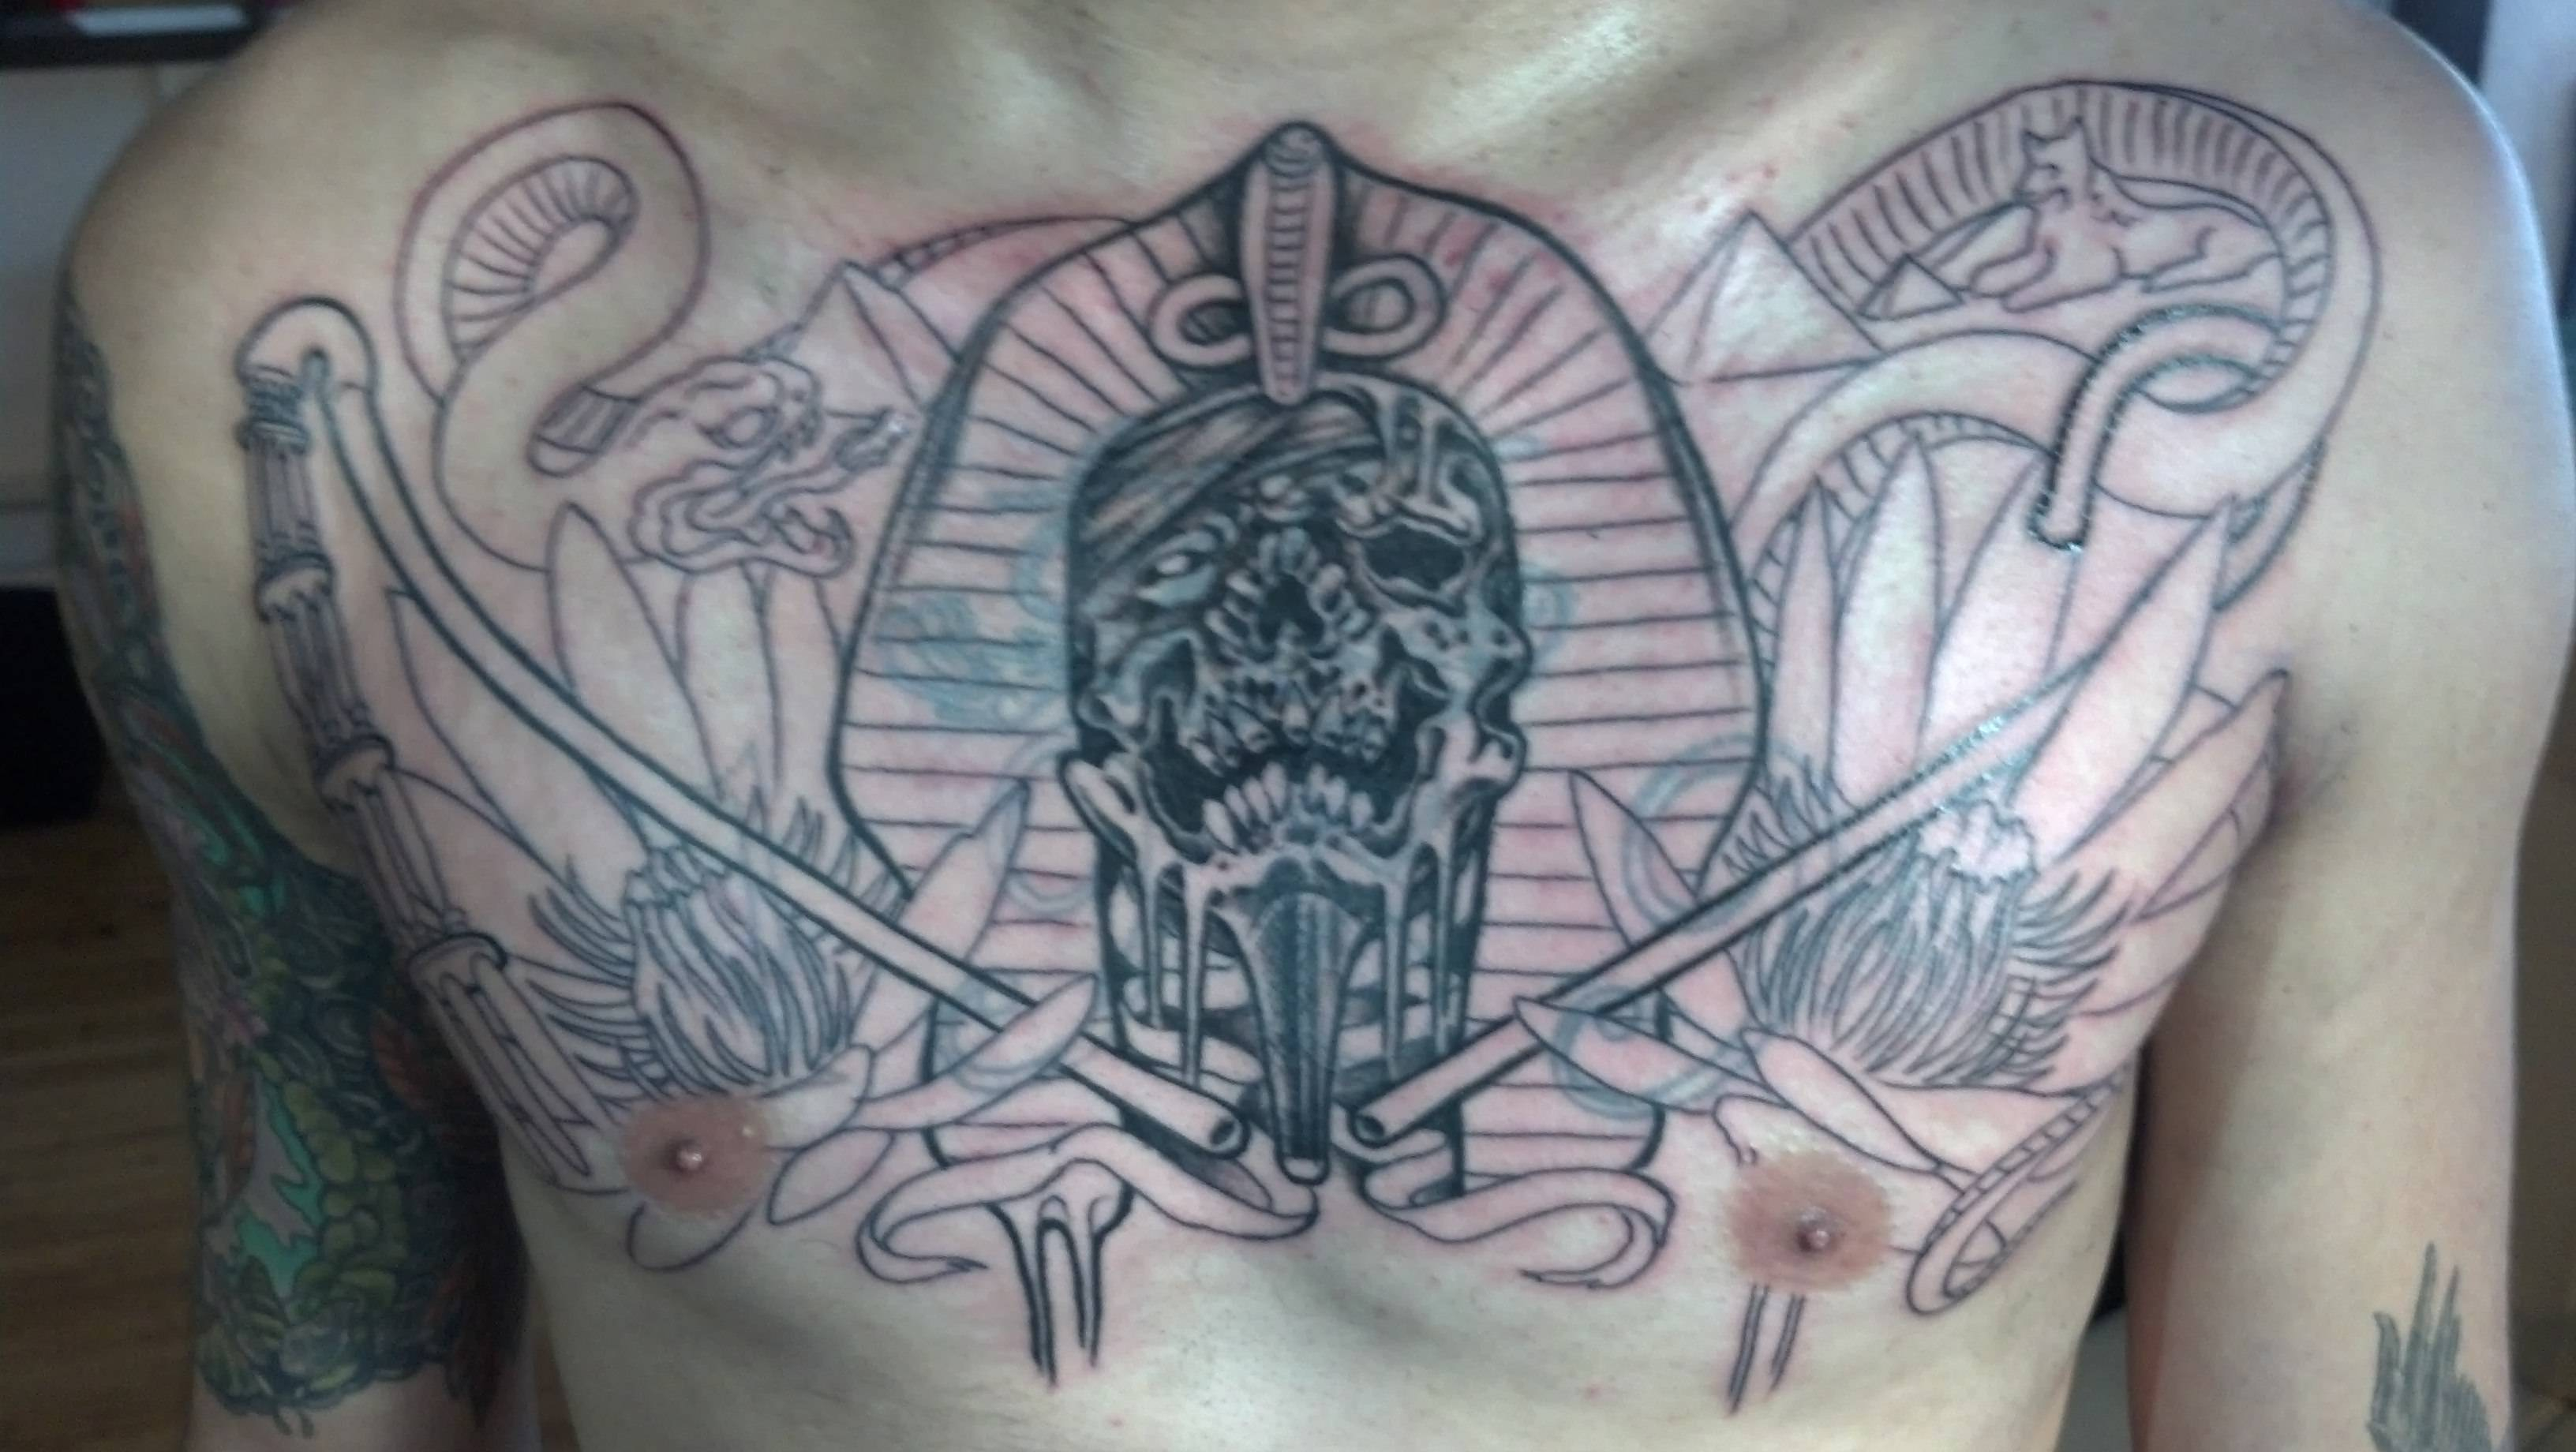 Cover Up Egyptian Chest Piece Pt 1 Savage Vanilla Gorilla intended for dimensions 3264 X 1840